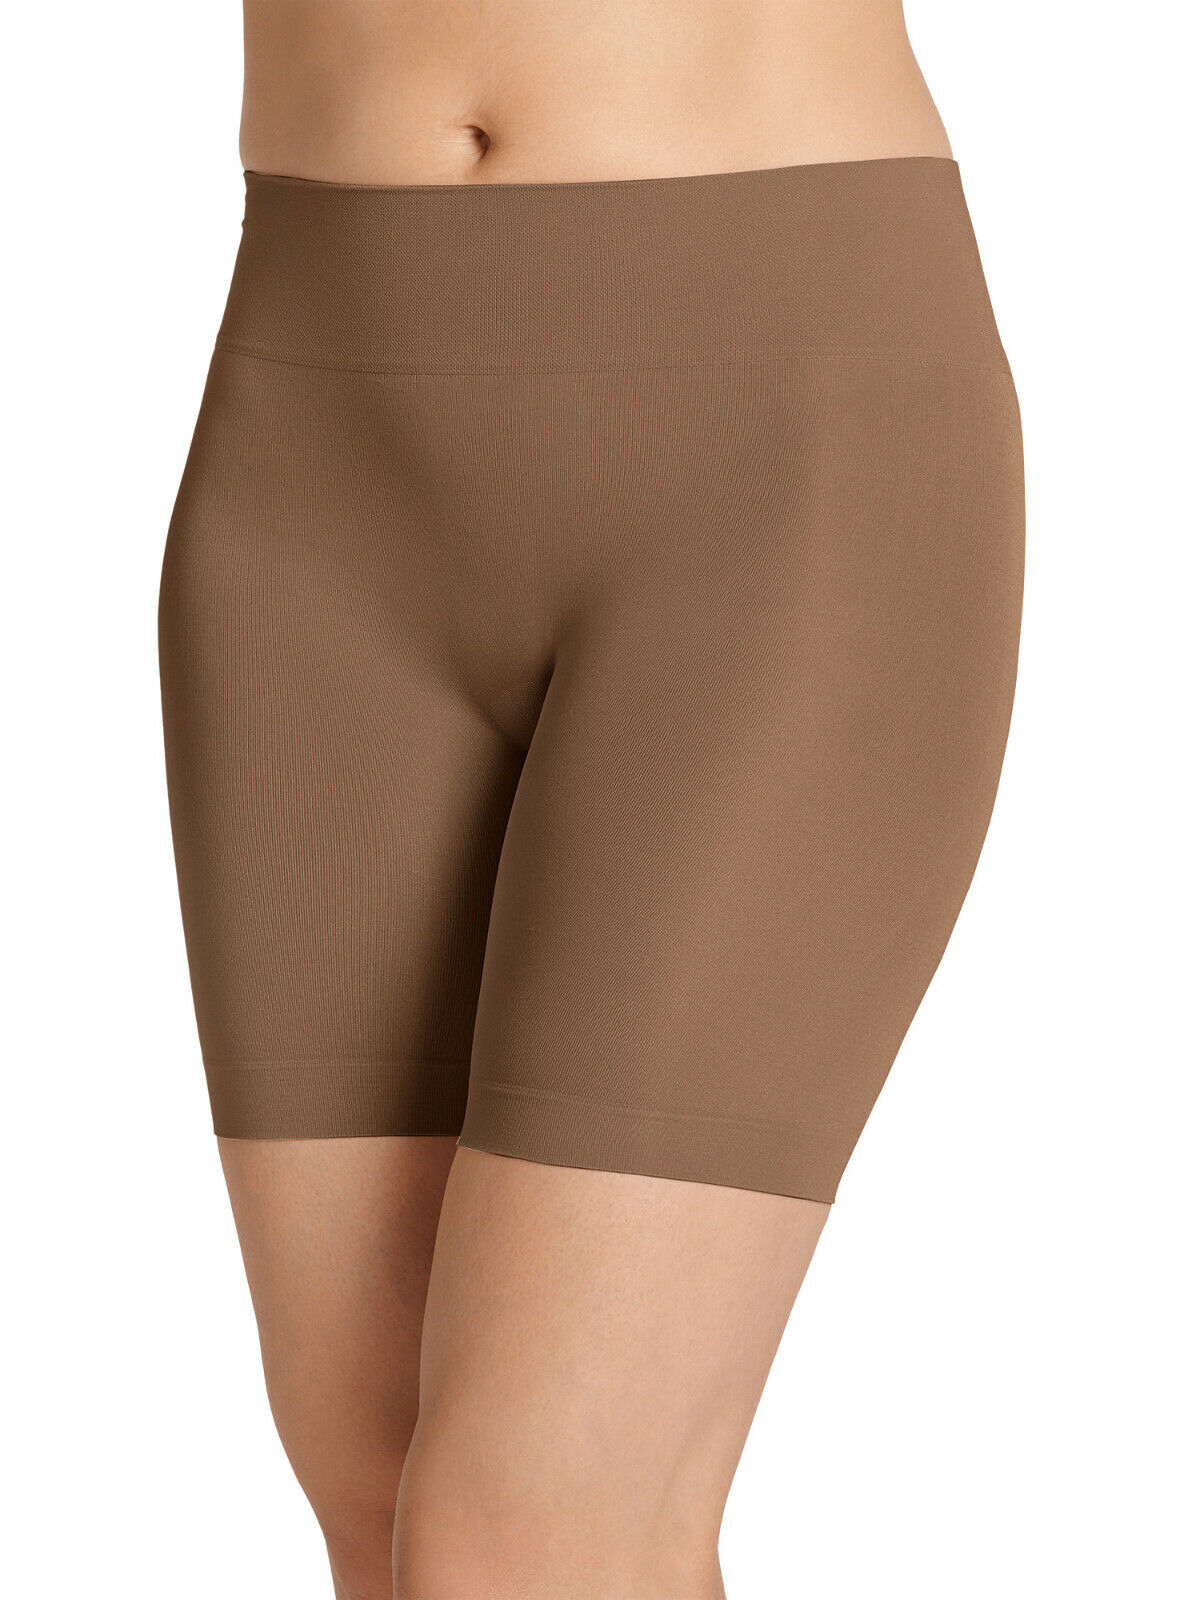 ***NEW JOCKEY LIFE COLLECTION SEAMFREE NO CHAFE SMOOTH SLIPSHORT (ALMOND) Clothing, Shoes & Accessories